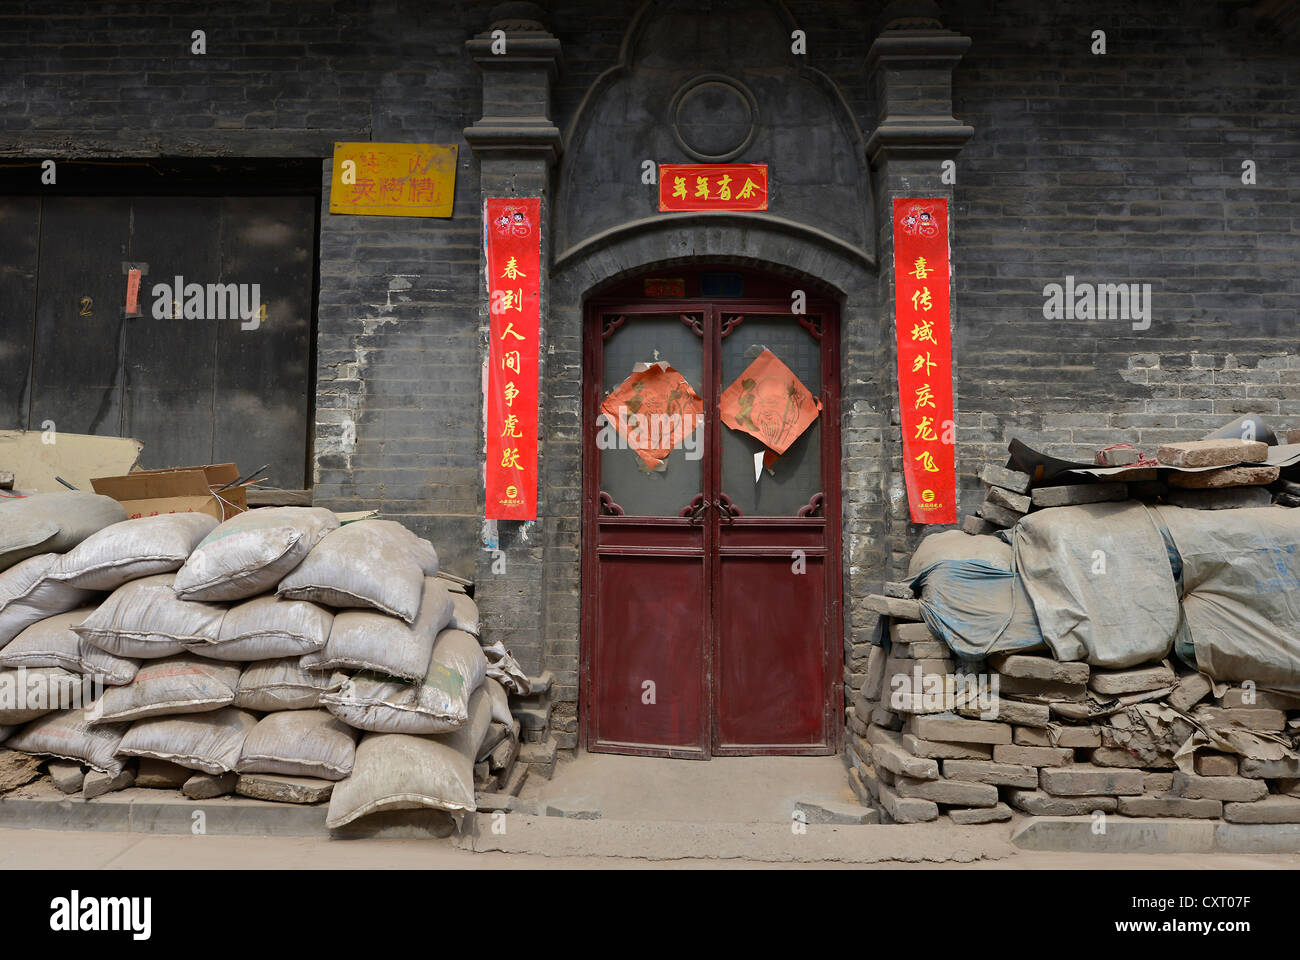 [Image: cement-sacks-in-front-of-an-old-chinese-...CXT07F.jpg]